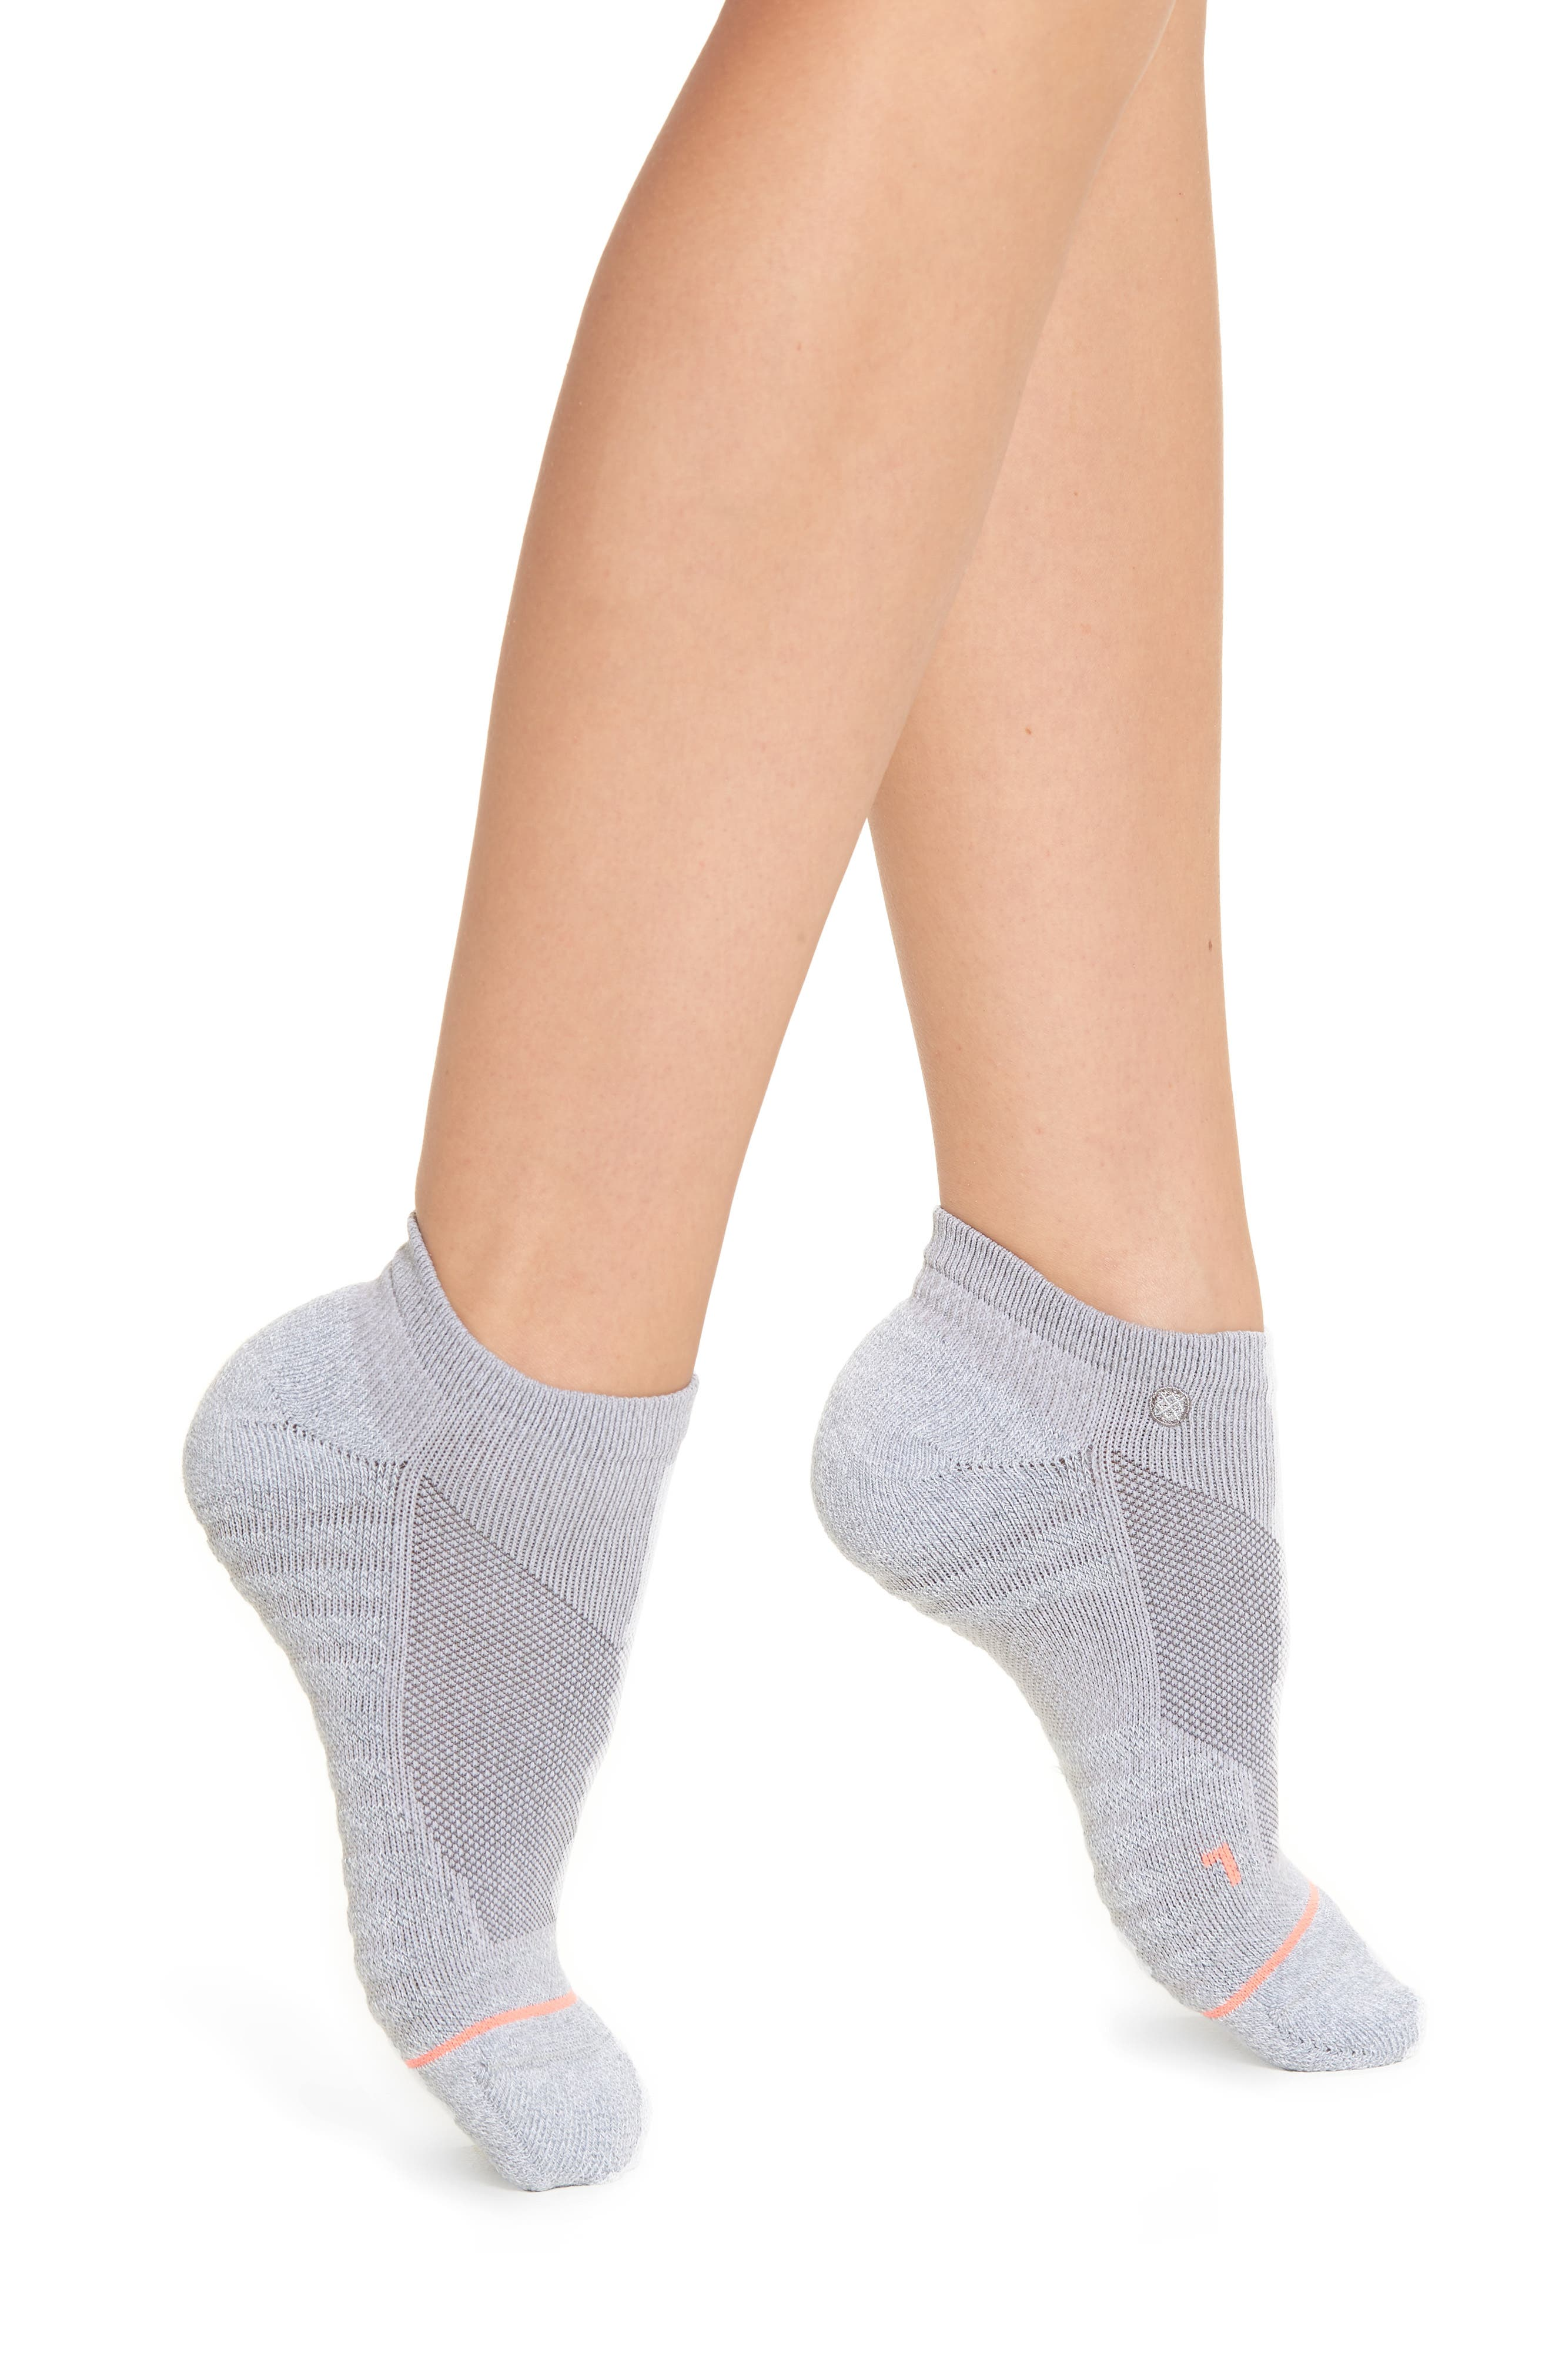 Icon Athletic Low Cut Socks,                             Main thumbnail 1, color,                             Grey